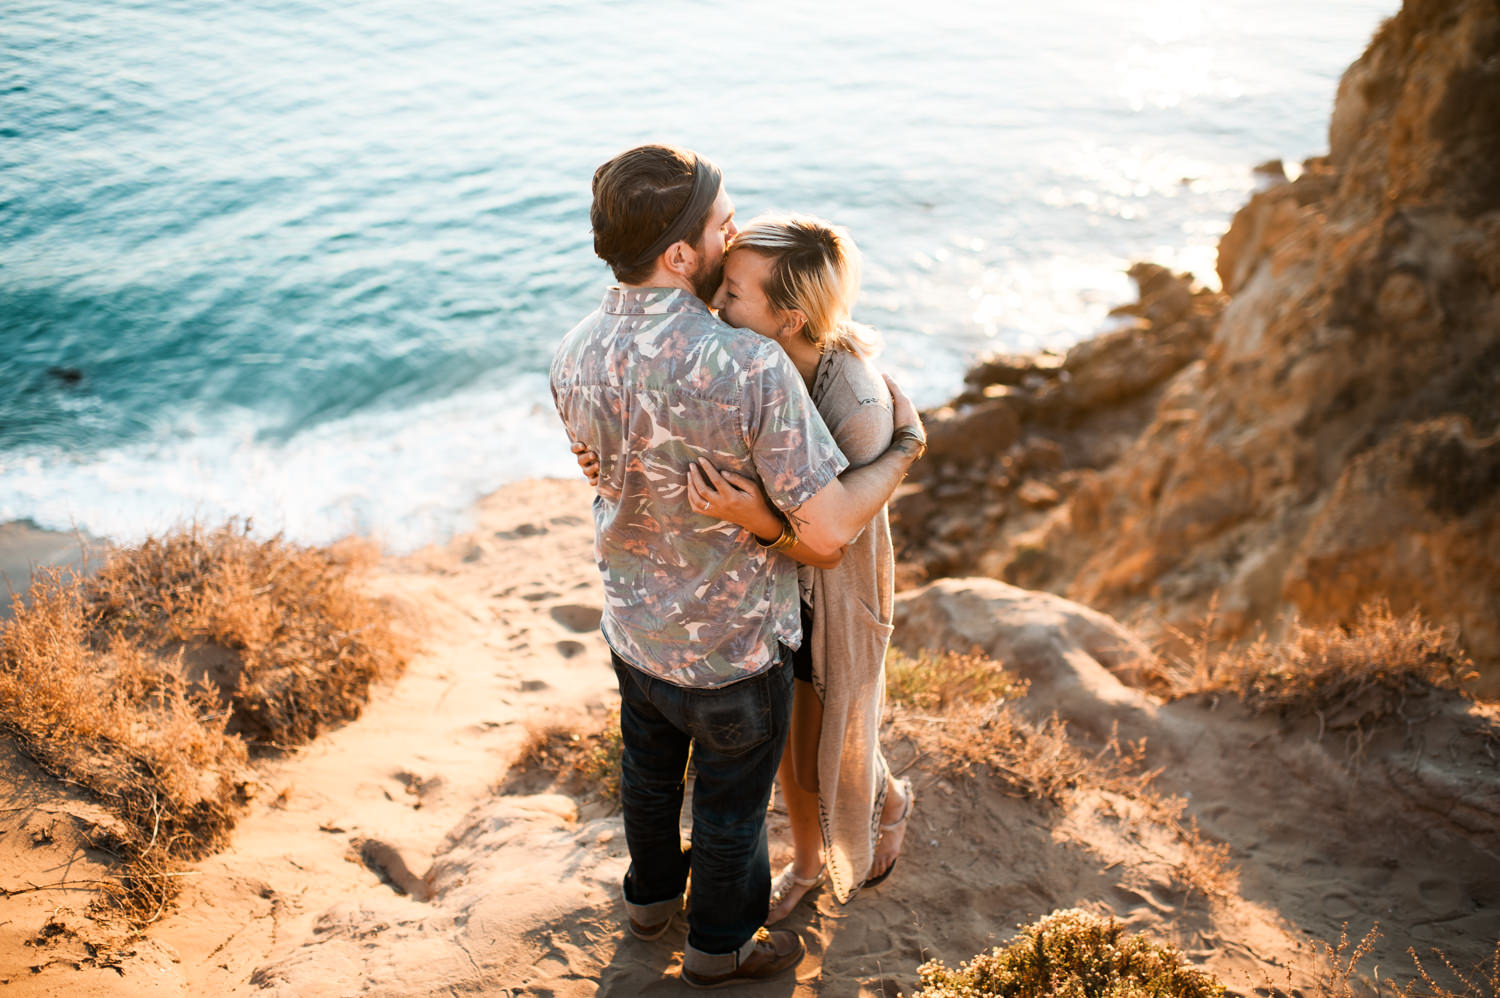 marionhphotography-marion_heurteboust-intimate_new-zealand-wedding_photographer-Point-Dume-Beach-California-Eva-Daniel